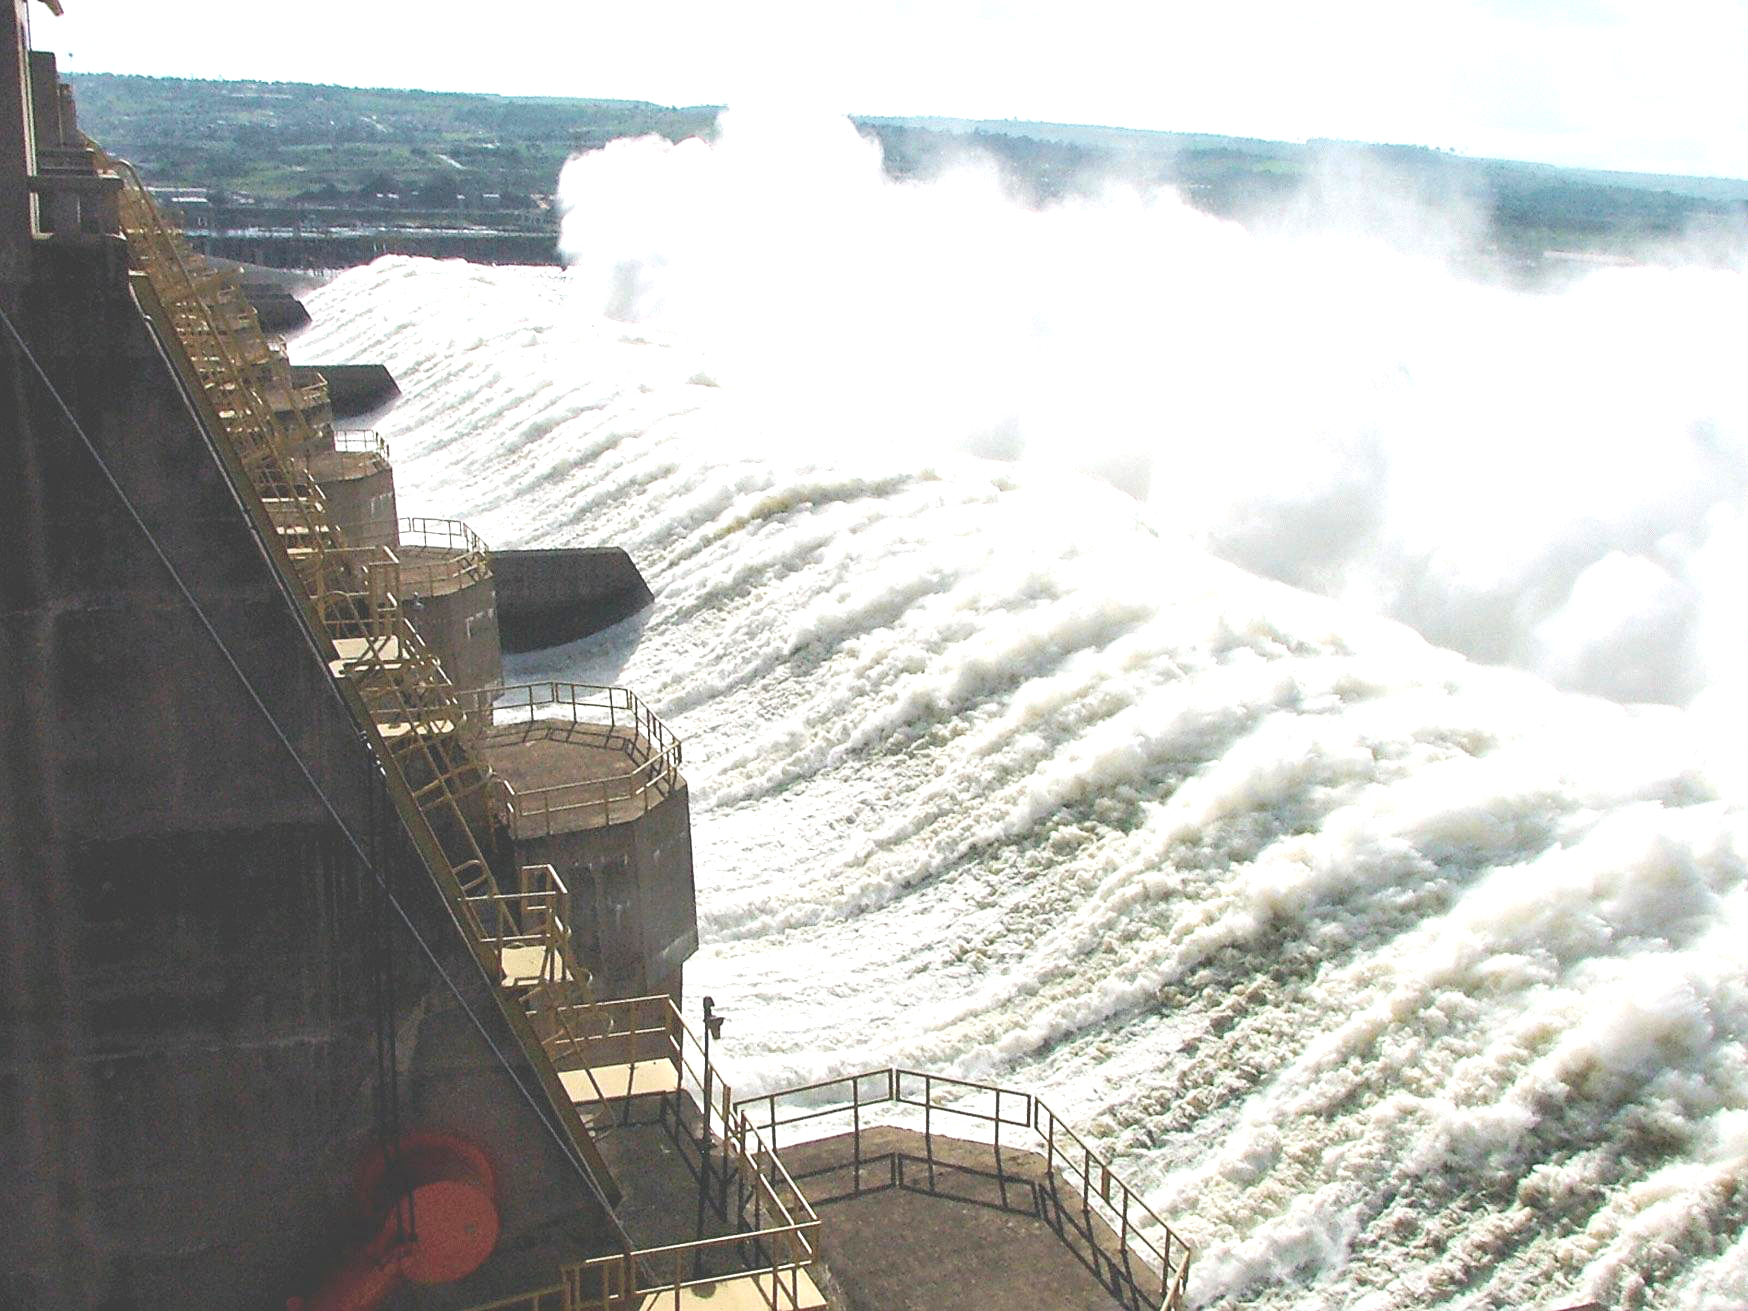 List of major power stations in yunnan - Aerial View Of A Concrete Structure A Low Hill And Massive Amounts Of Water That